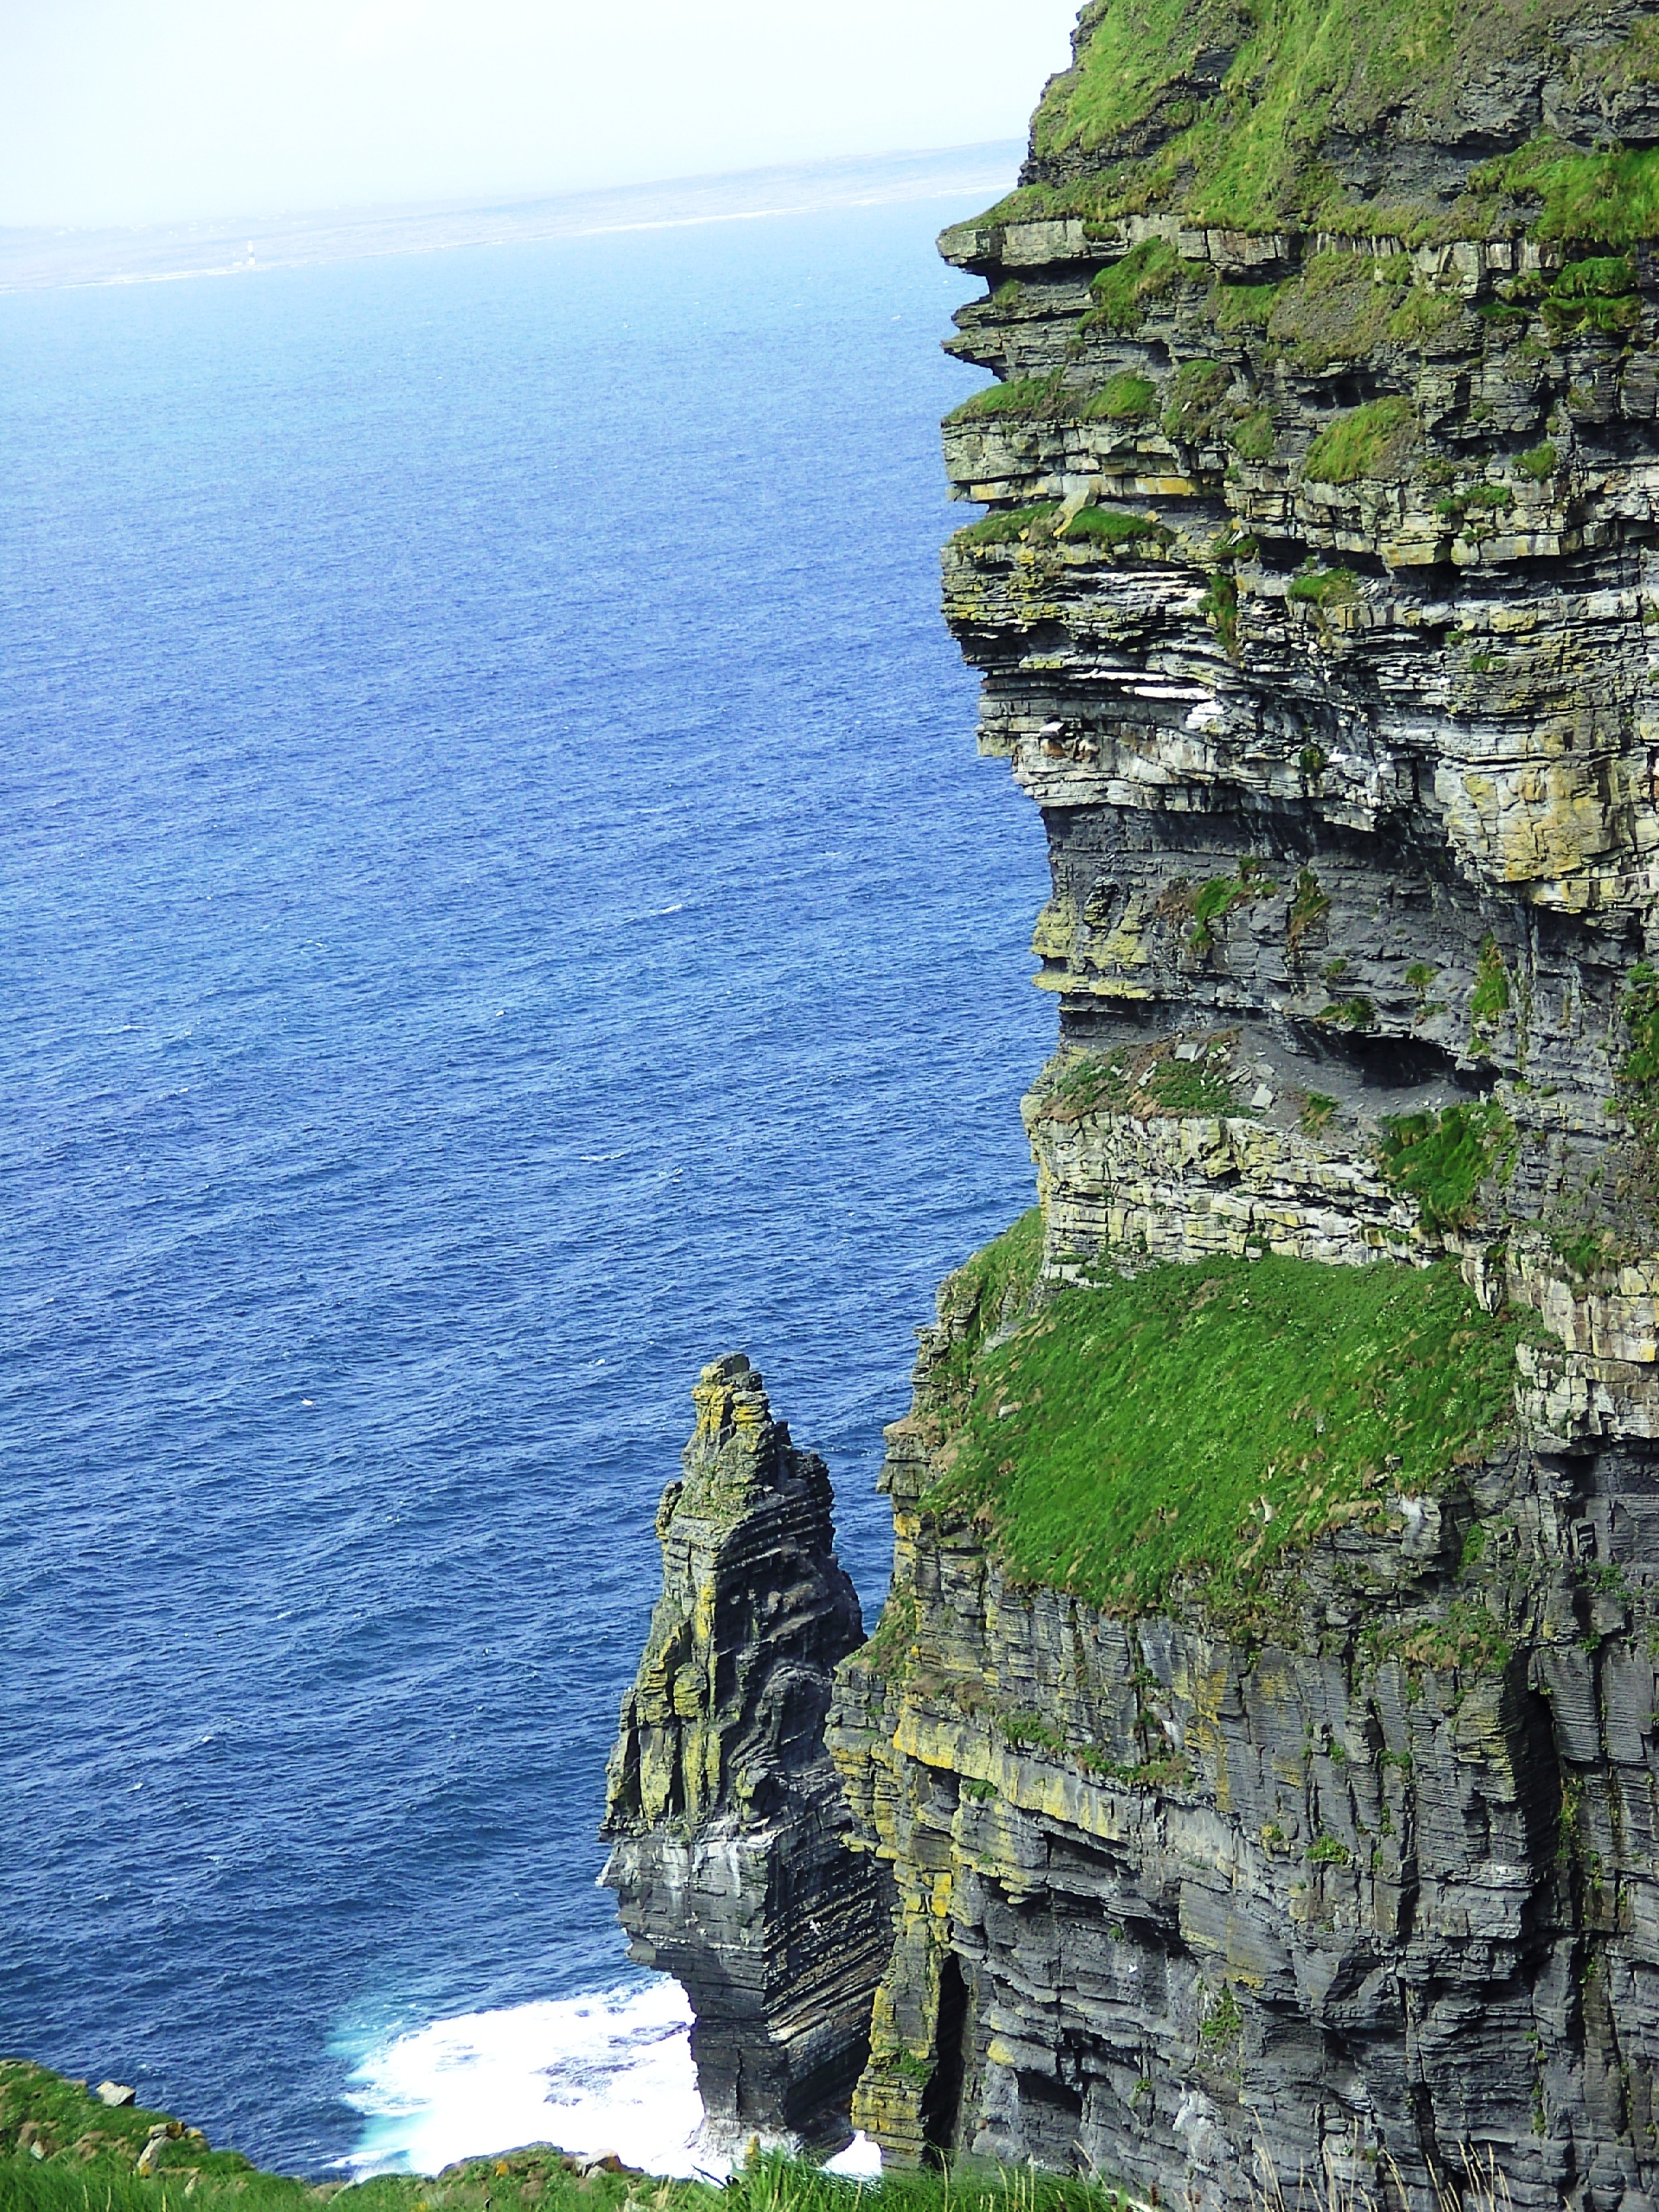 a description of cliffs of moher The cliffs of moher are spectacular - but unfortunately also an example of misguided attempts to exploit the visitor as much as possible.